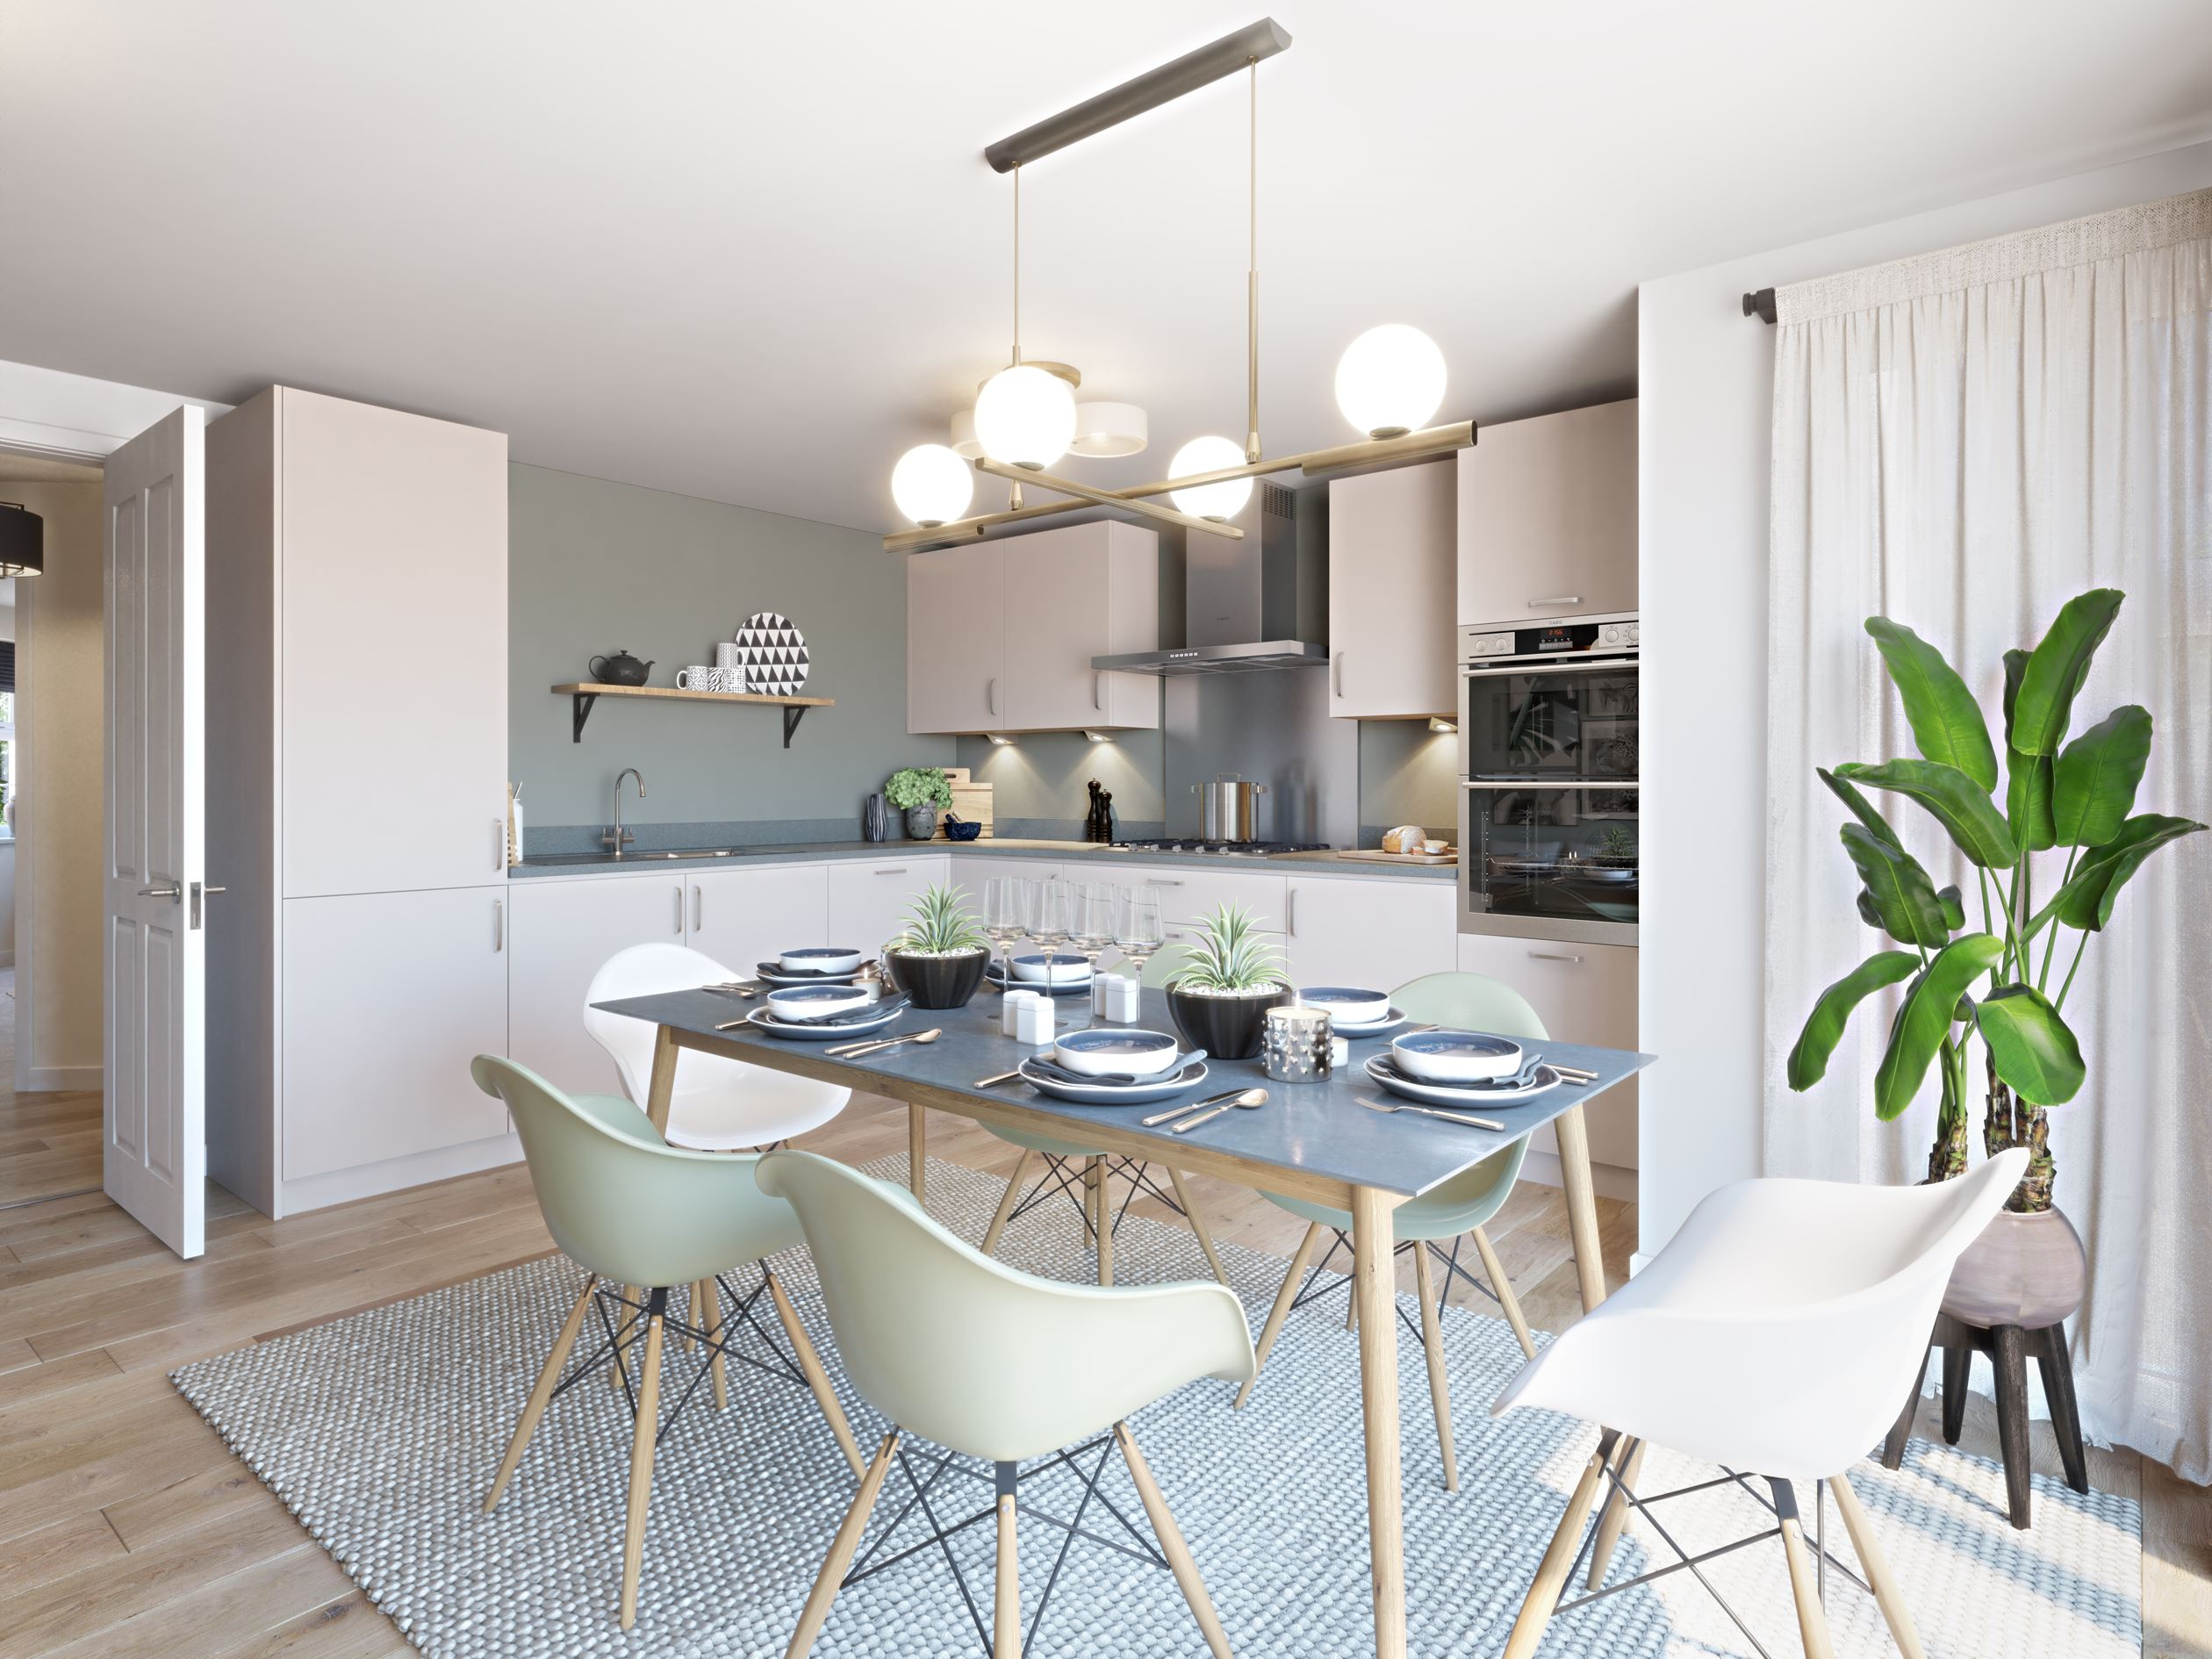 Kitchen and dining room in the Exeter, a 4 bedroom detached home